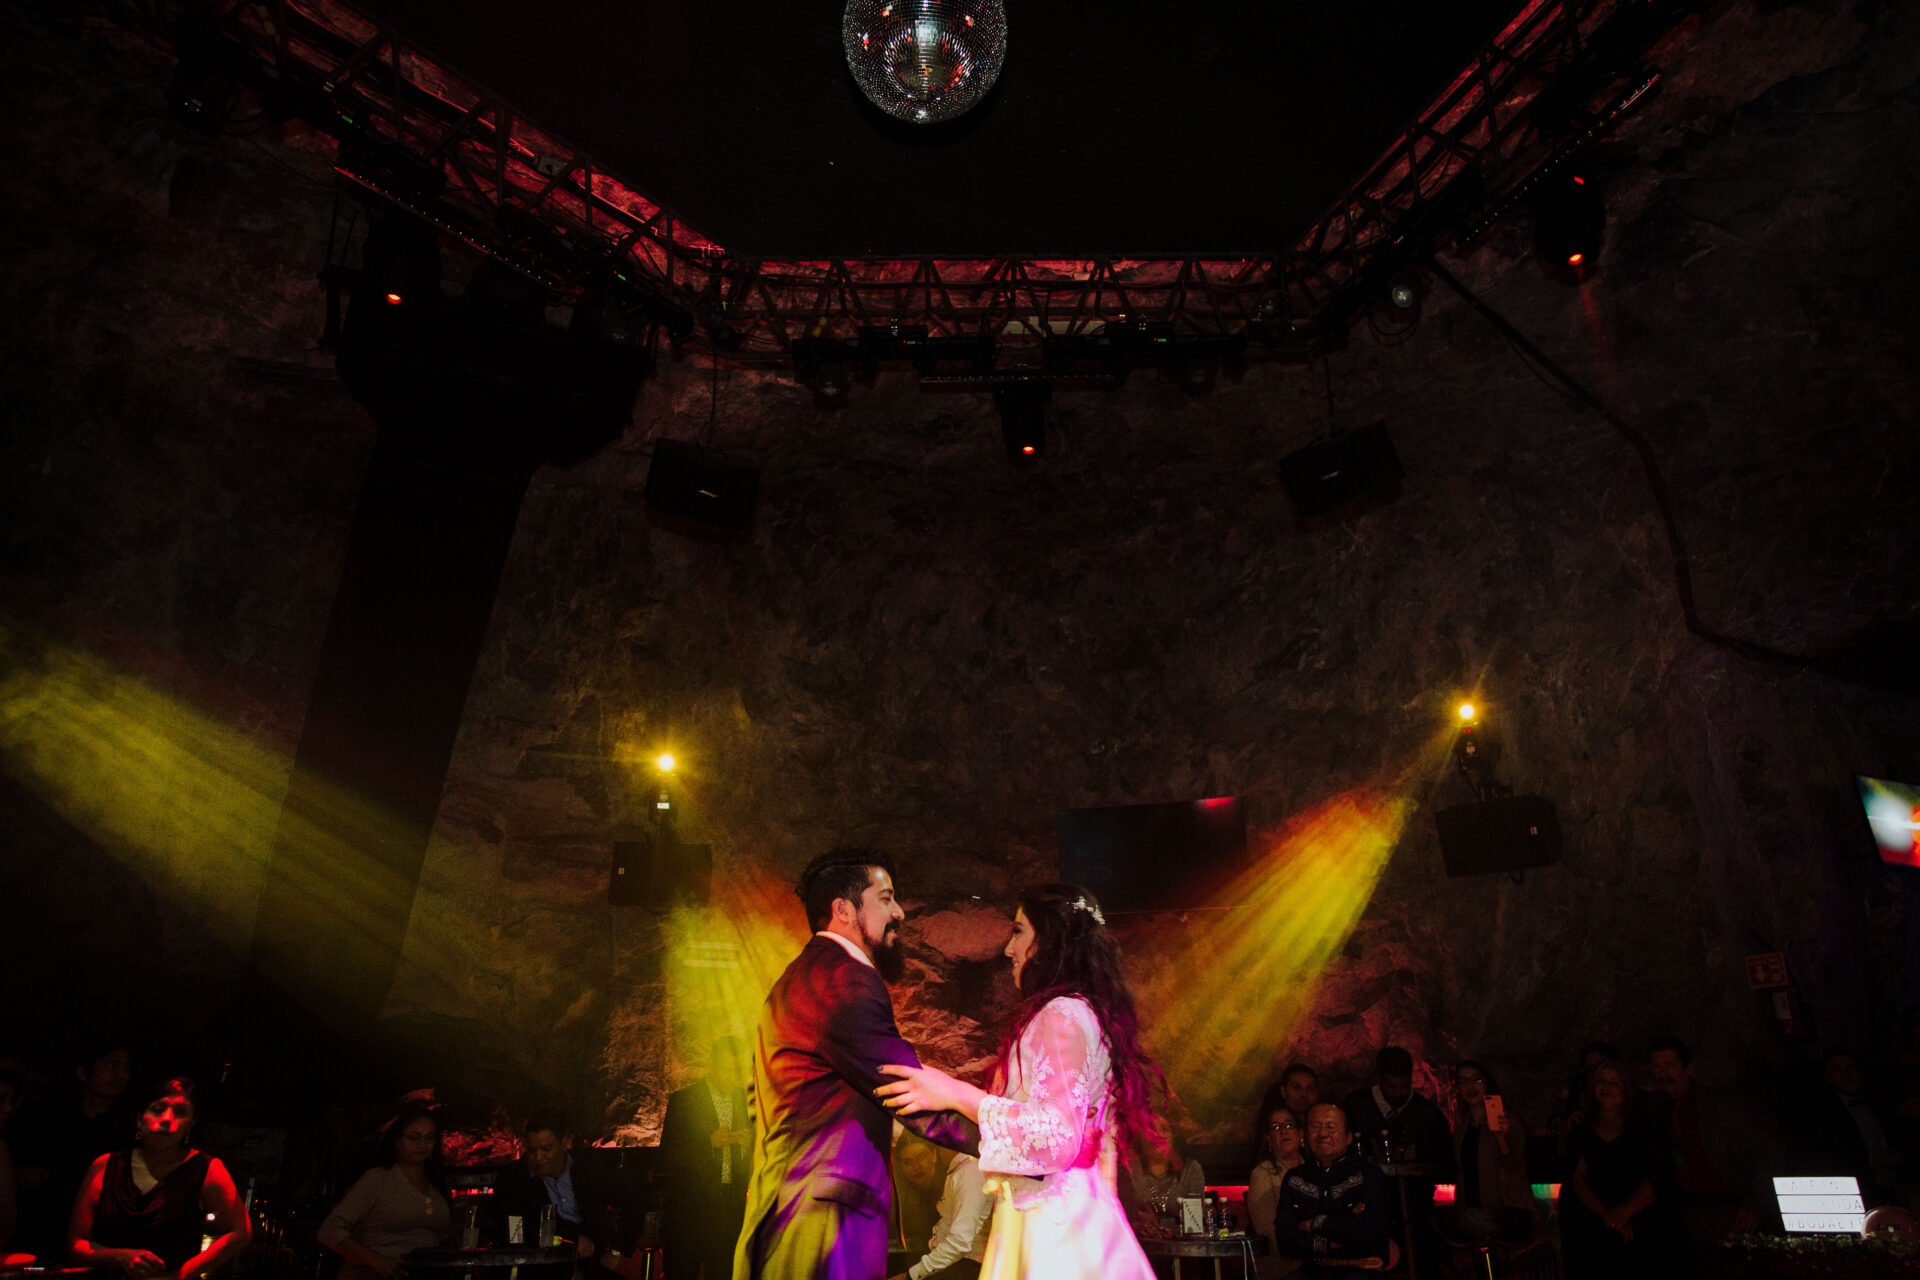 javier_noriega_fotografo_bodas_la_mina_club_zacatecas_wedding_photographer17